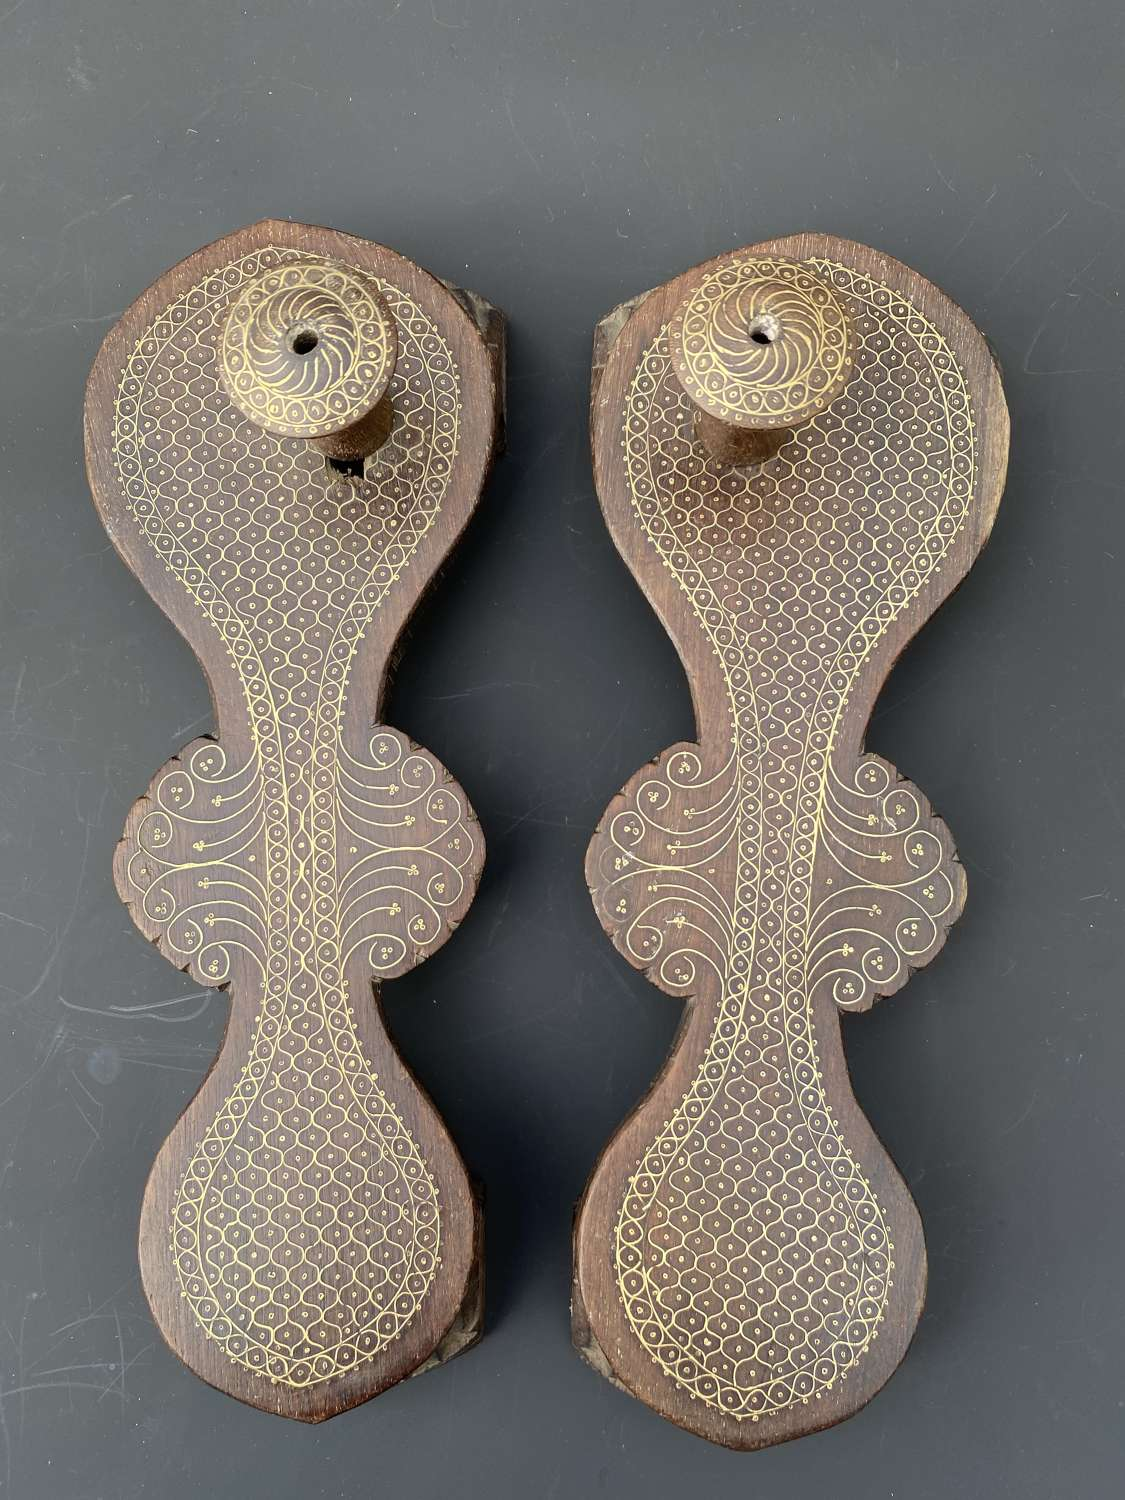 A FINE PAIR OF 19C INDIAN BRASS INLAID WOODEN SANDALS